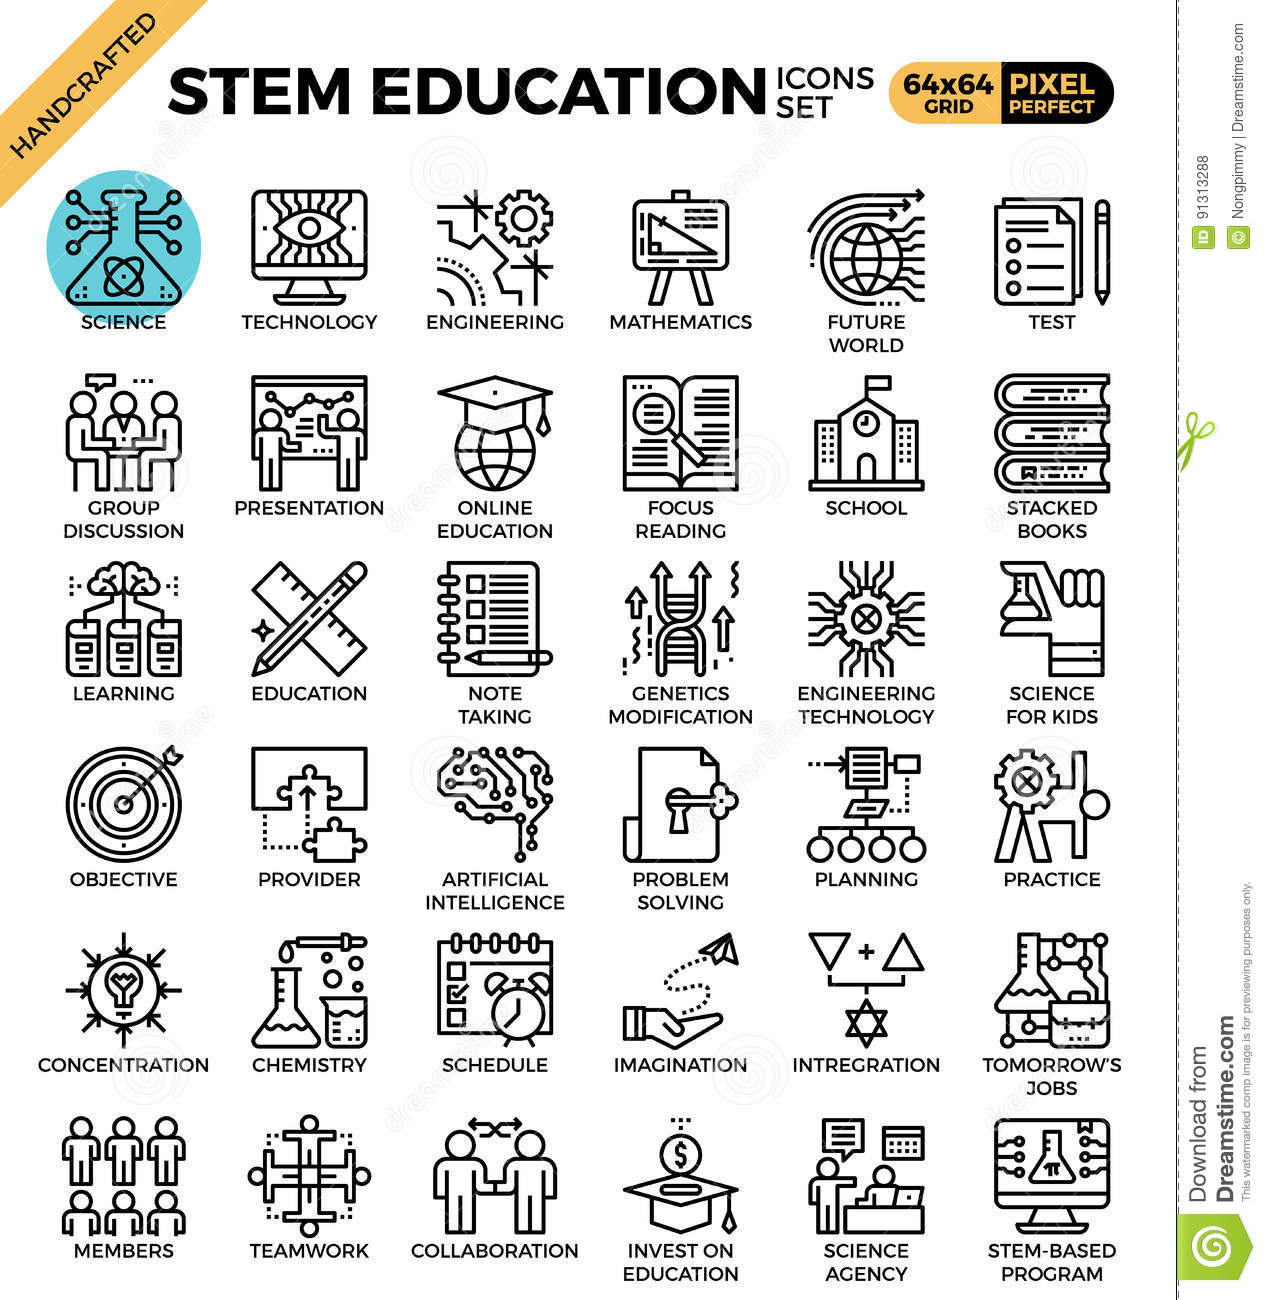 Stem Science Technology Engineering Math Education Stock